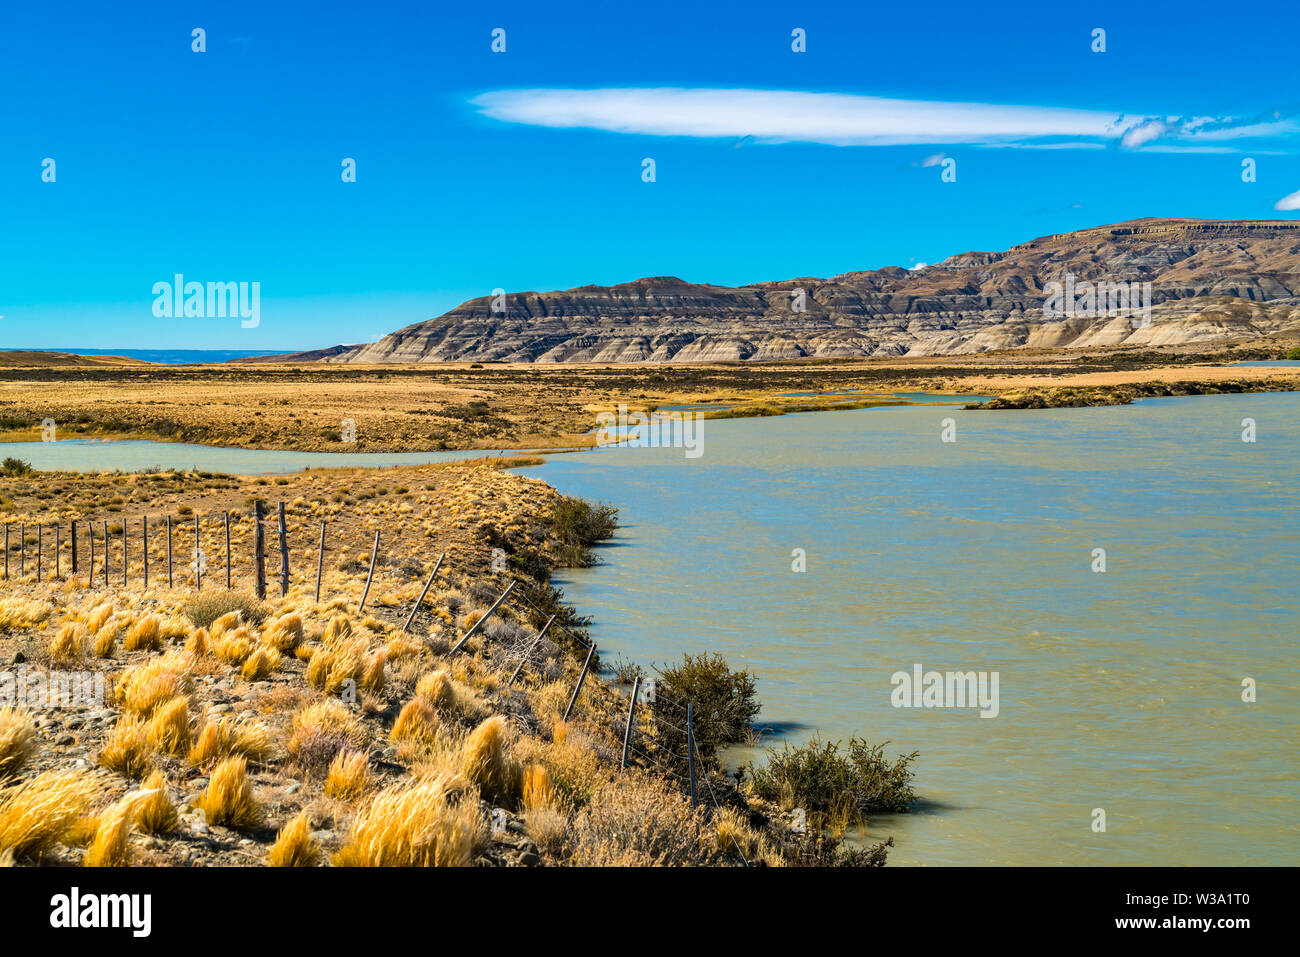 View of mountain and lake on the wayside to El Chalten in Argentina - Stock Image